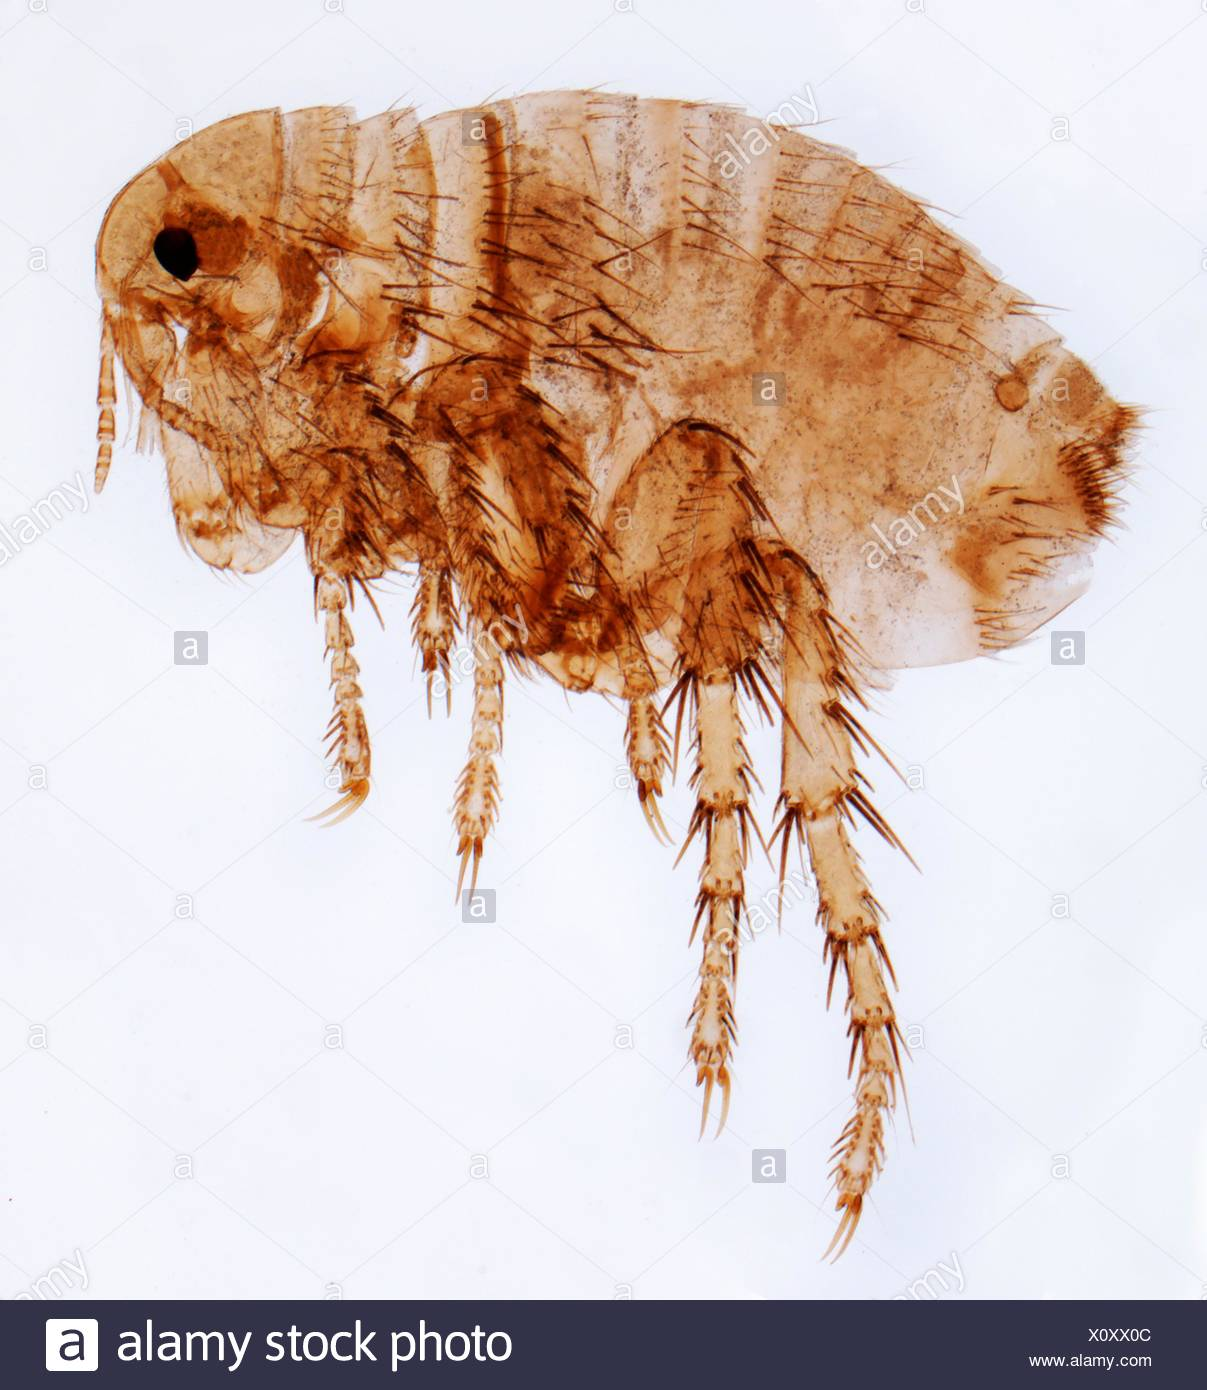 Human flea. Light micrograph (LM) of a female human flea (Pulex irratans). Fleas are wingless and flattened from side to side, which makes them difficult to dislodge in hair. They have enlarged hind legs for jumping. Fleas are a vector for various diseases. The female lacks the distinctinctive genitalia of the male flea. Magnification: x15 when printed at 10 centimetres wide. - Stock Image